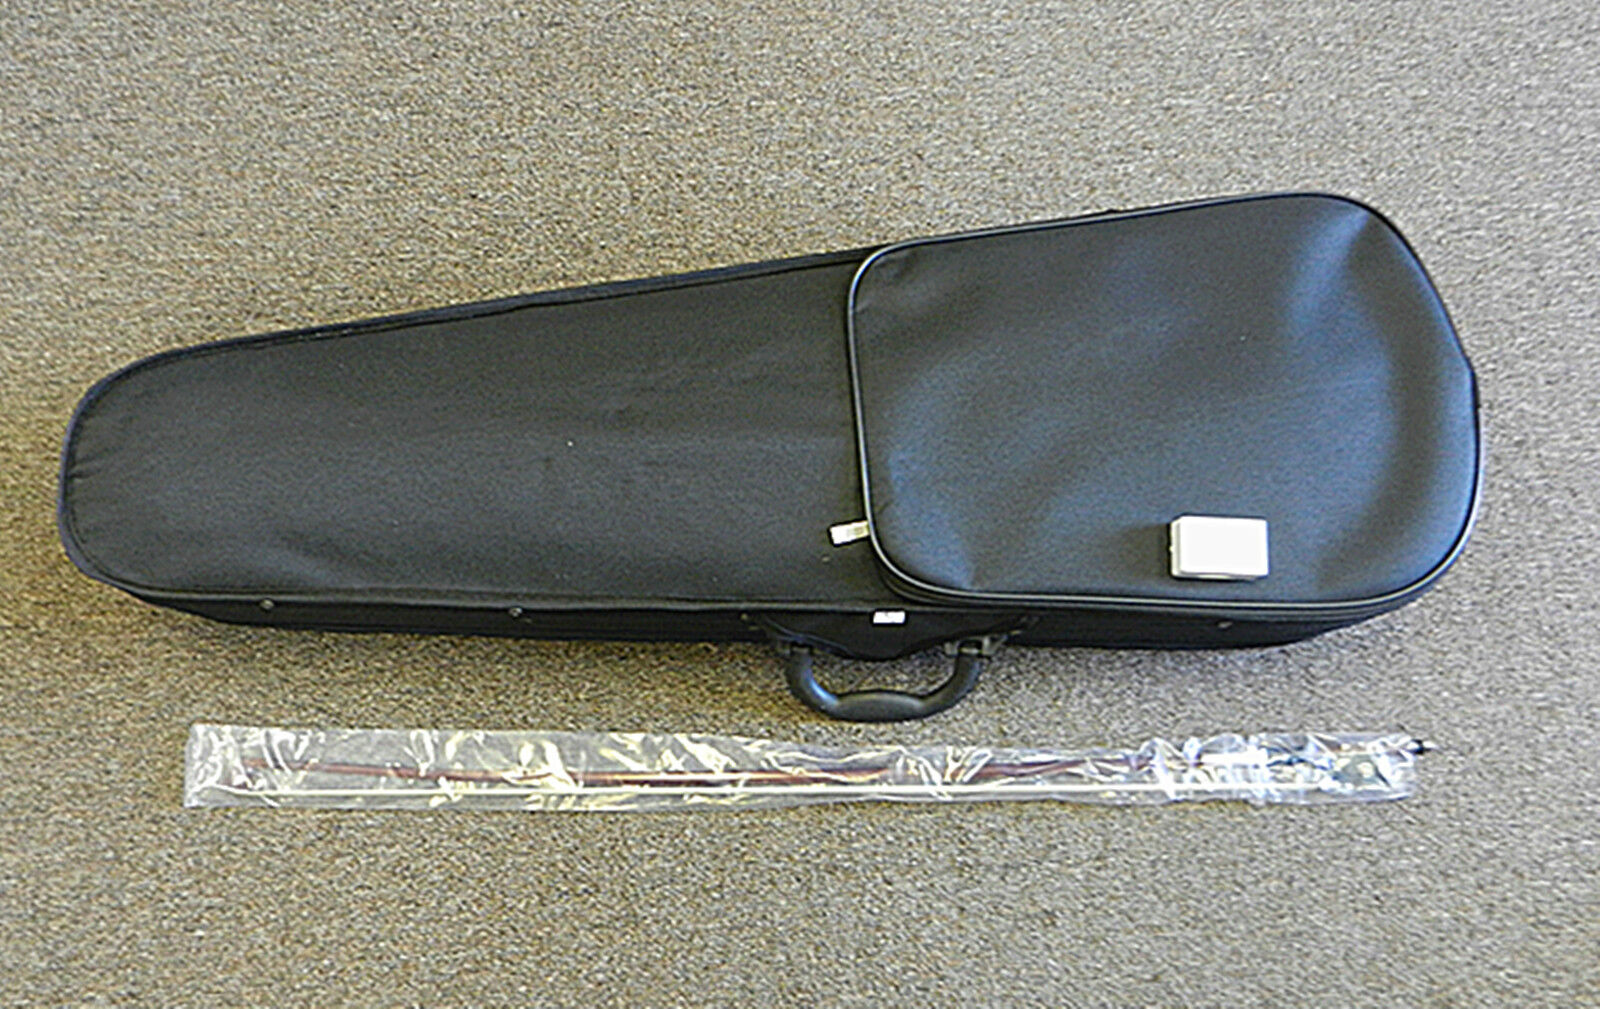 NEW 3/4 Größe Violin, Copy Copy Copy of A. Stradivari, Prelude + Case + Bow,Ready To Play f7bdfb